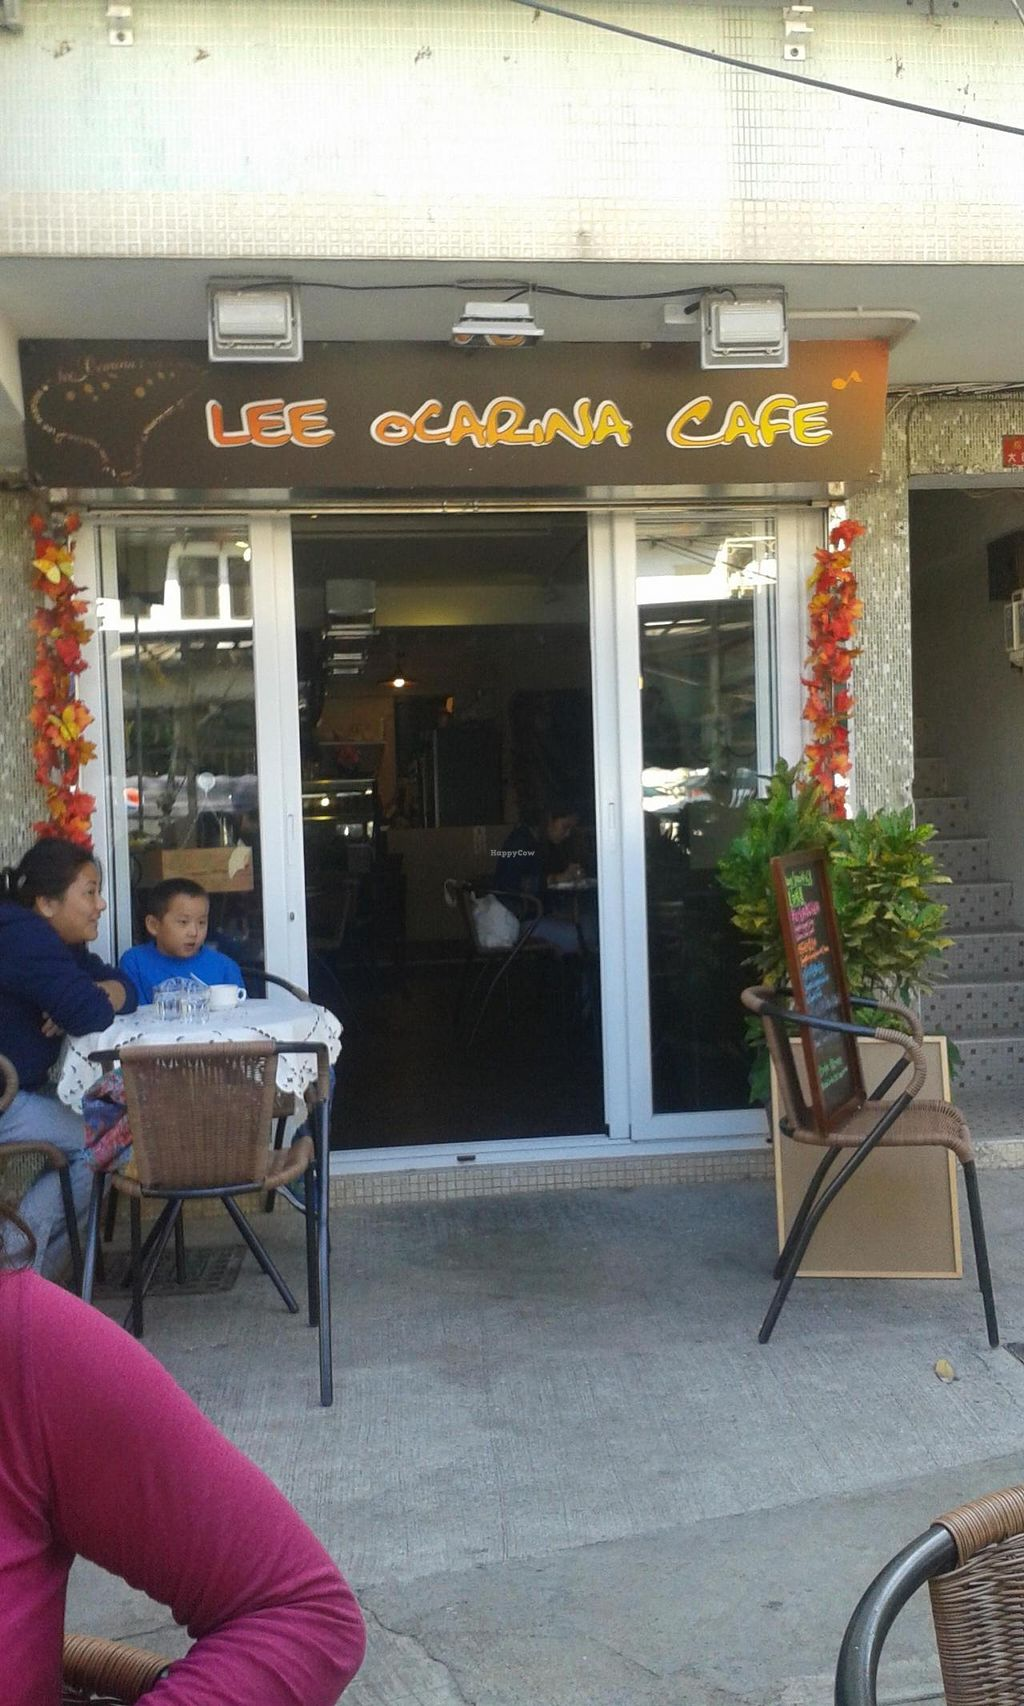 """Photo of Lee Ocarina Cafe  by <a href=""""/members/profile/Stevie"""">Stevie</a> <br/>1 <br/> November 25, 2014  - <a href='/contact/abuse/image/53273/86429'>Report</a>"""